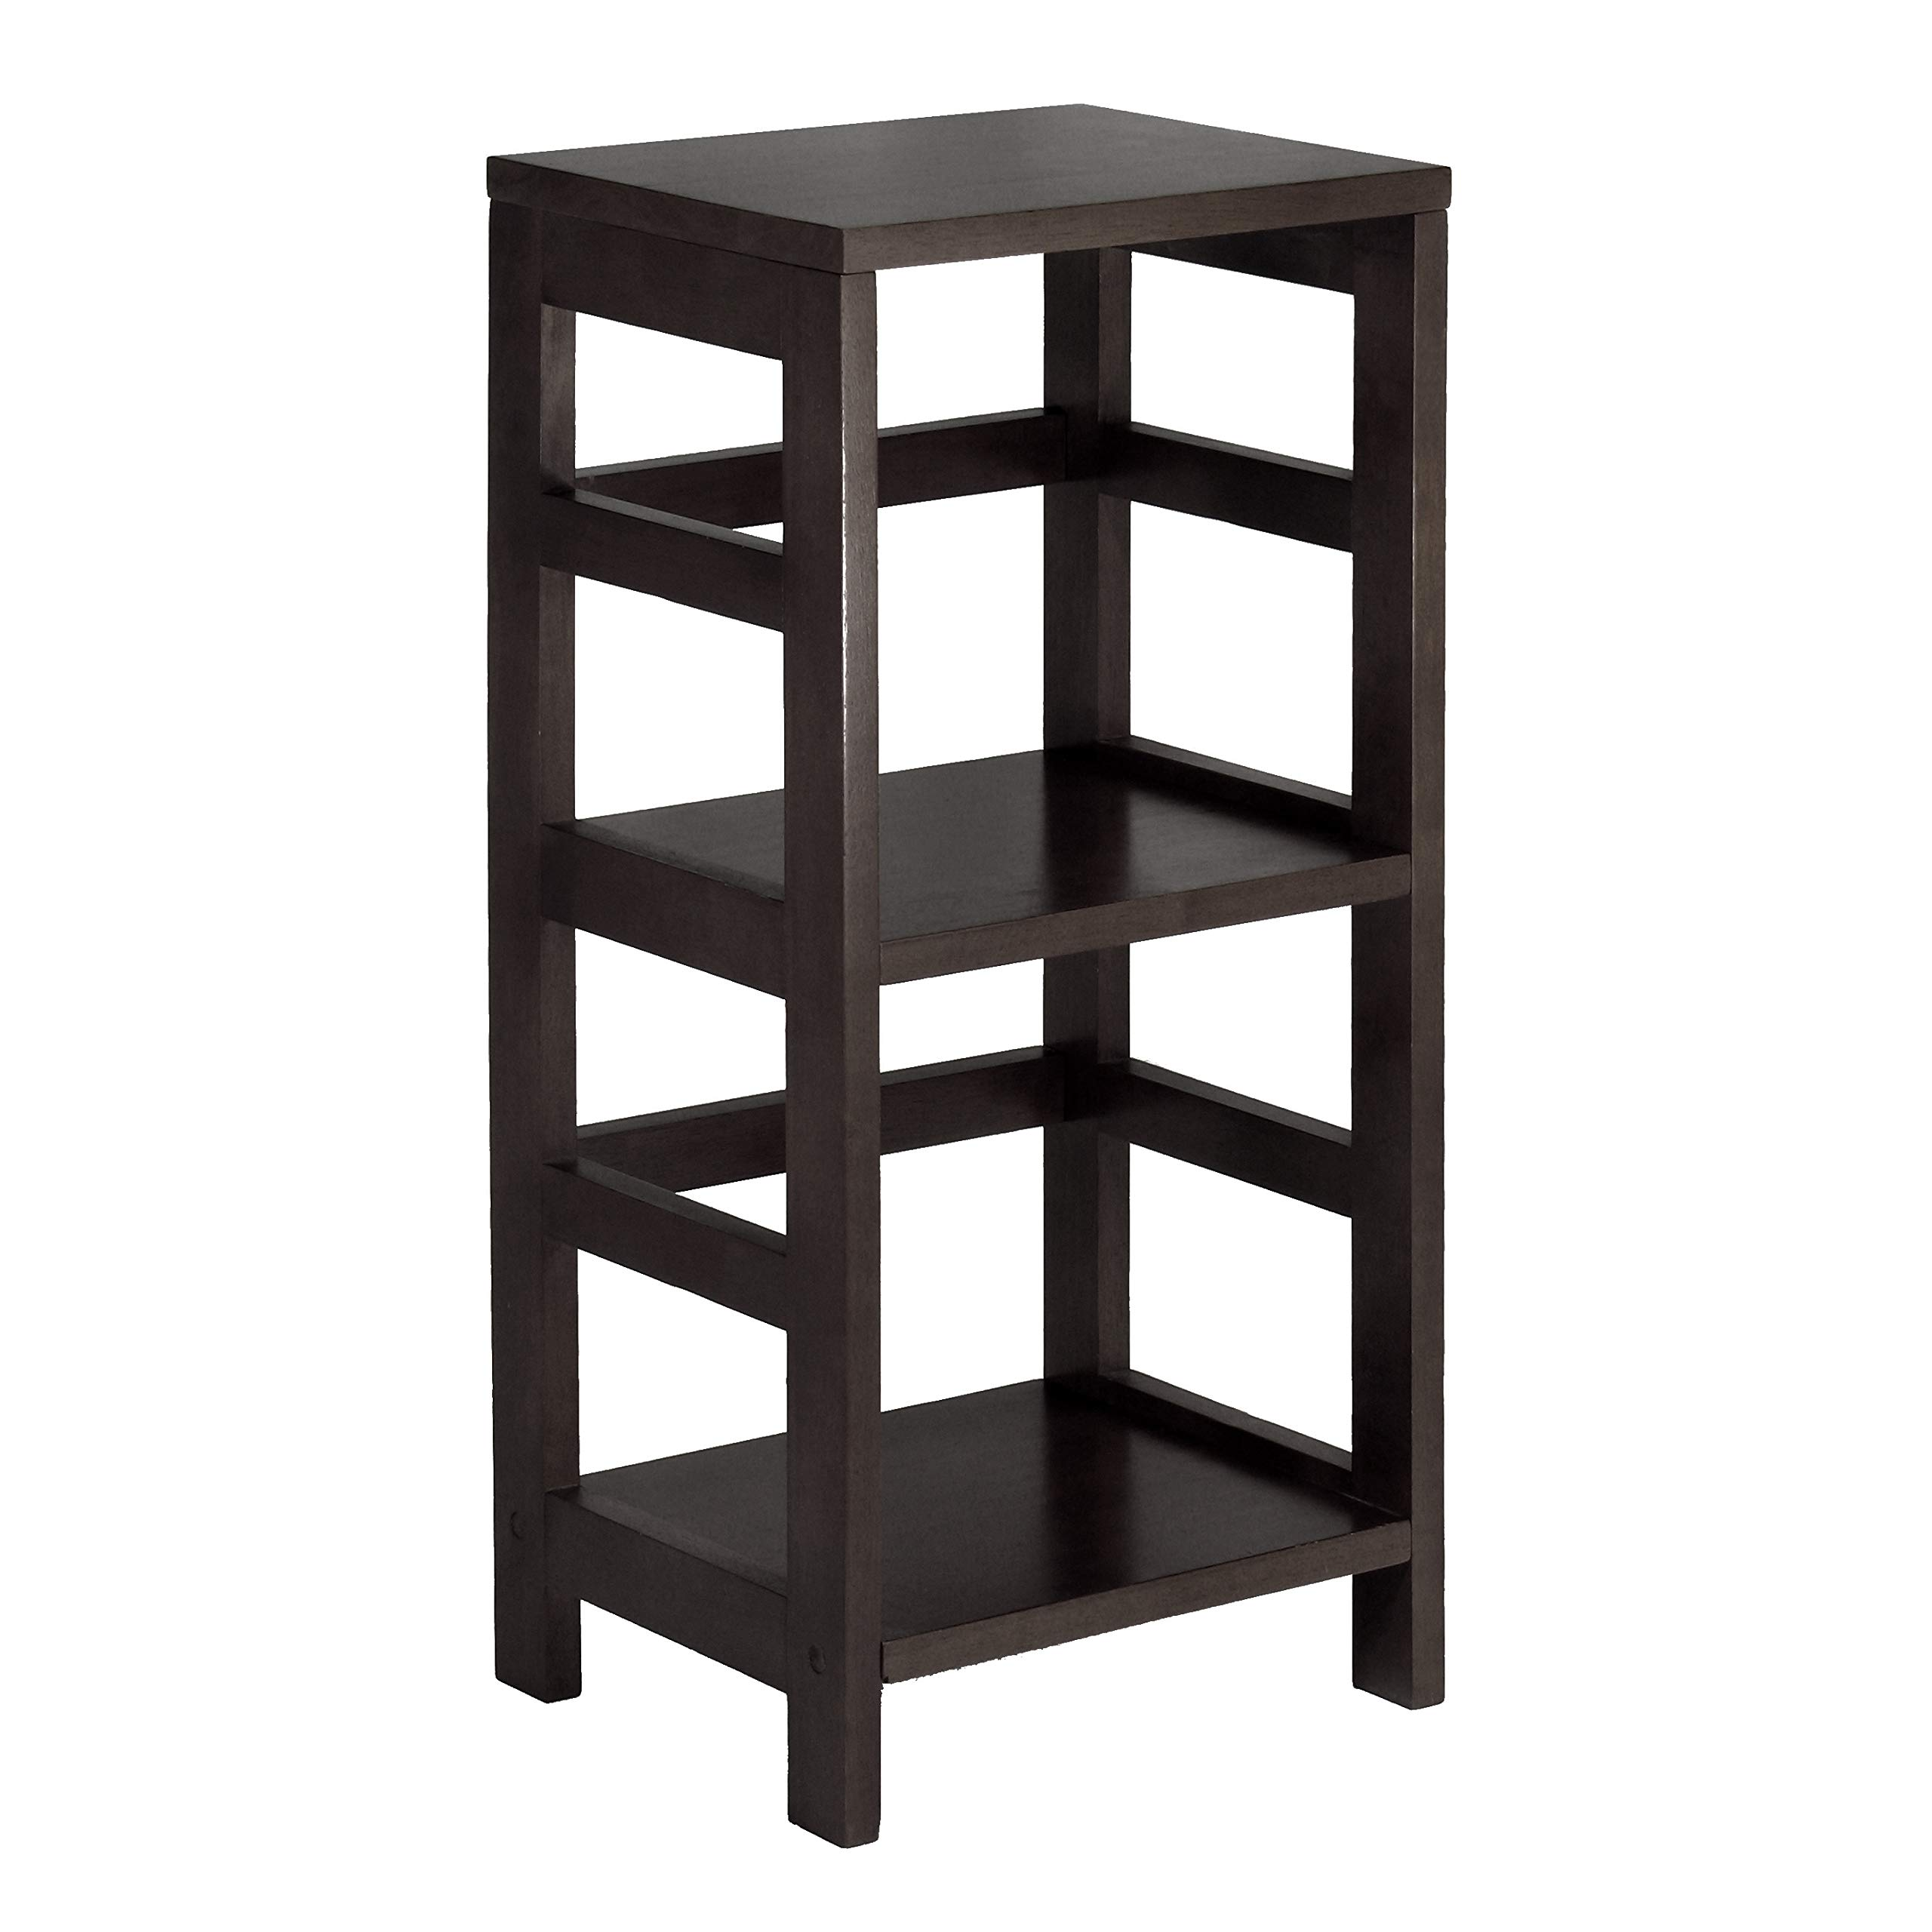 Winsome Wood 92314 Leo Model Name Shelving, Tall, Espresso by Winsome Wood